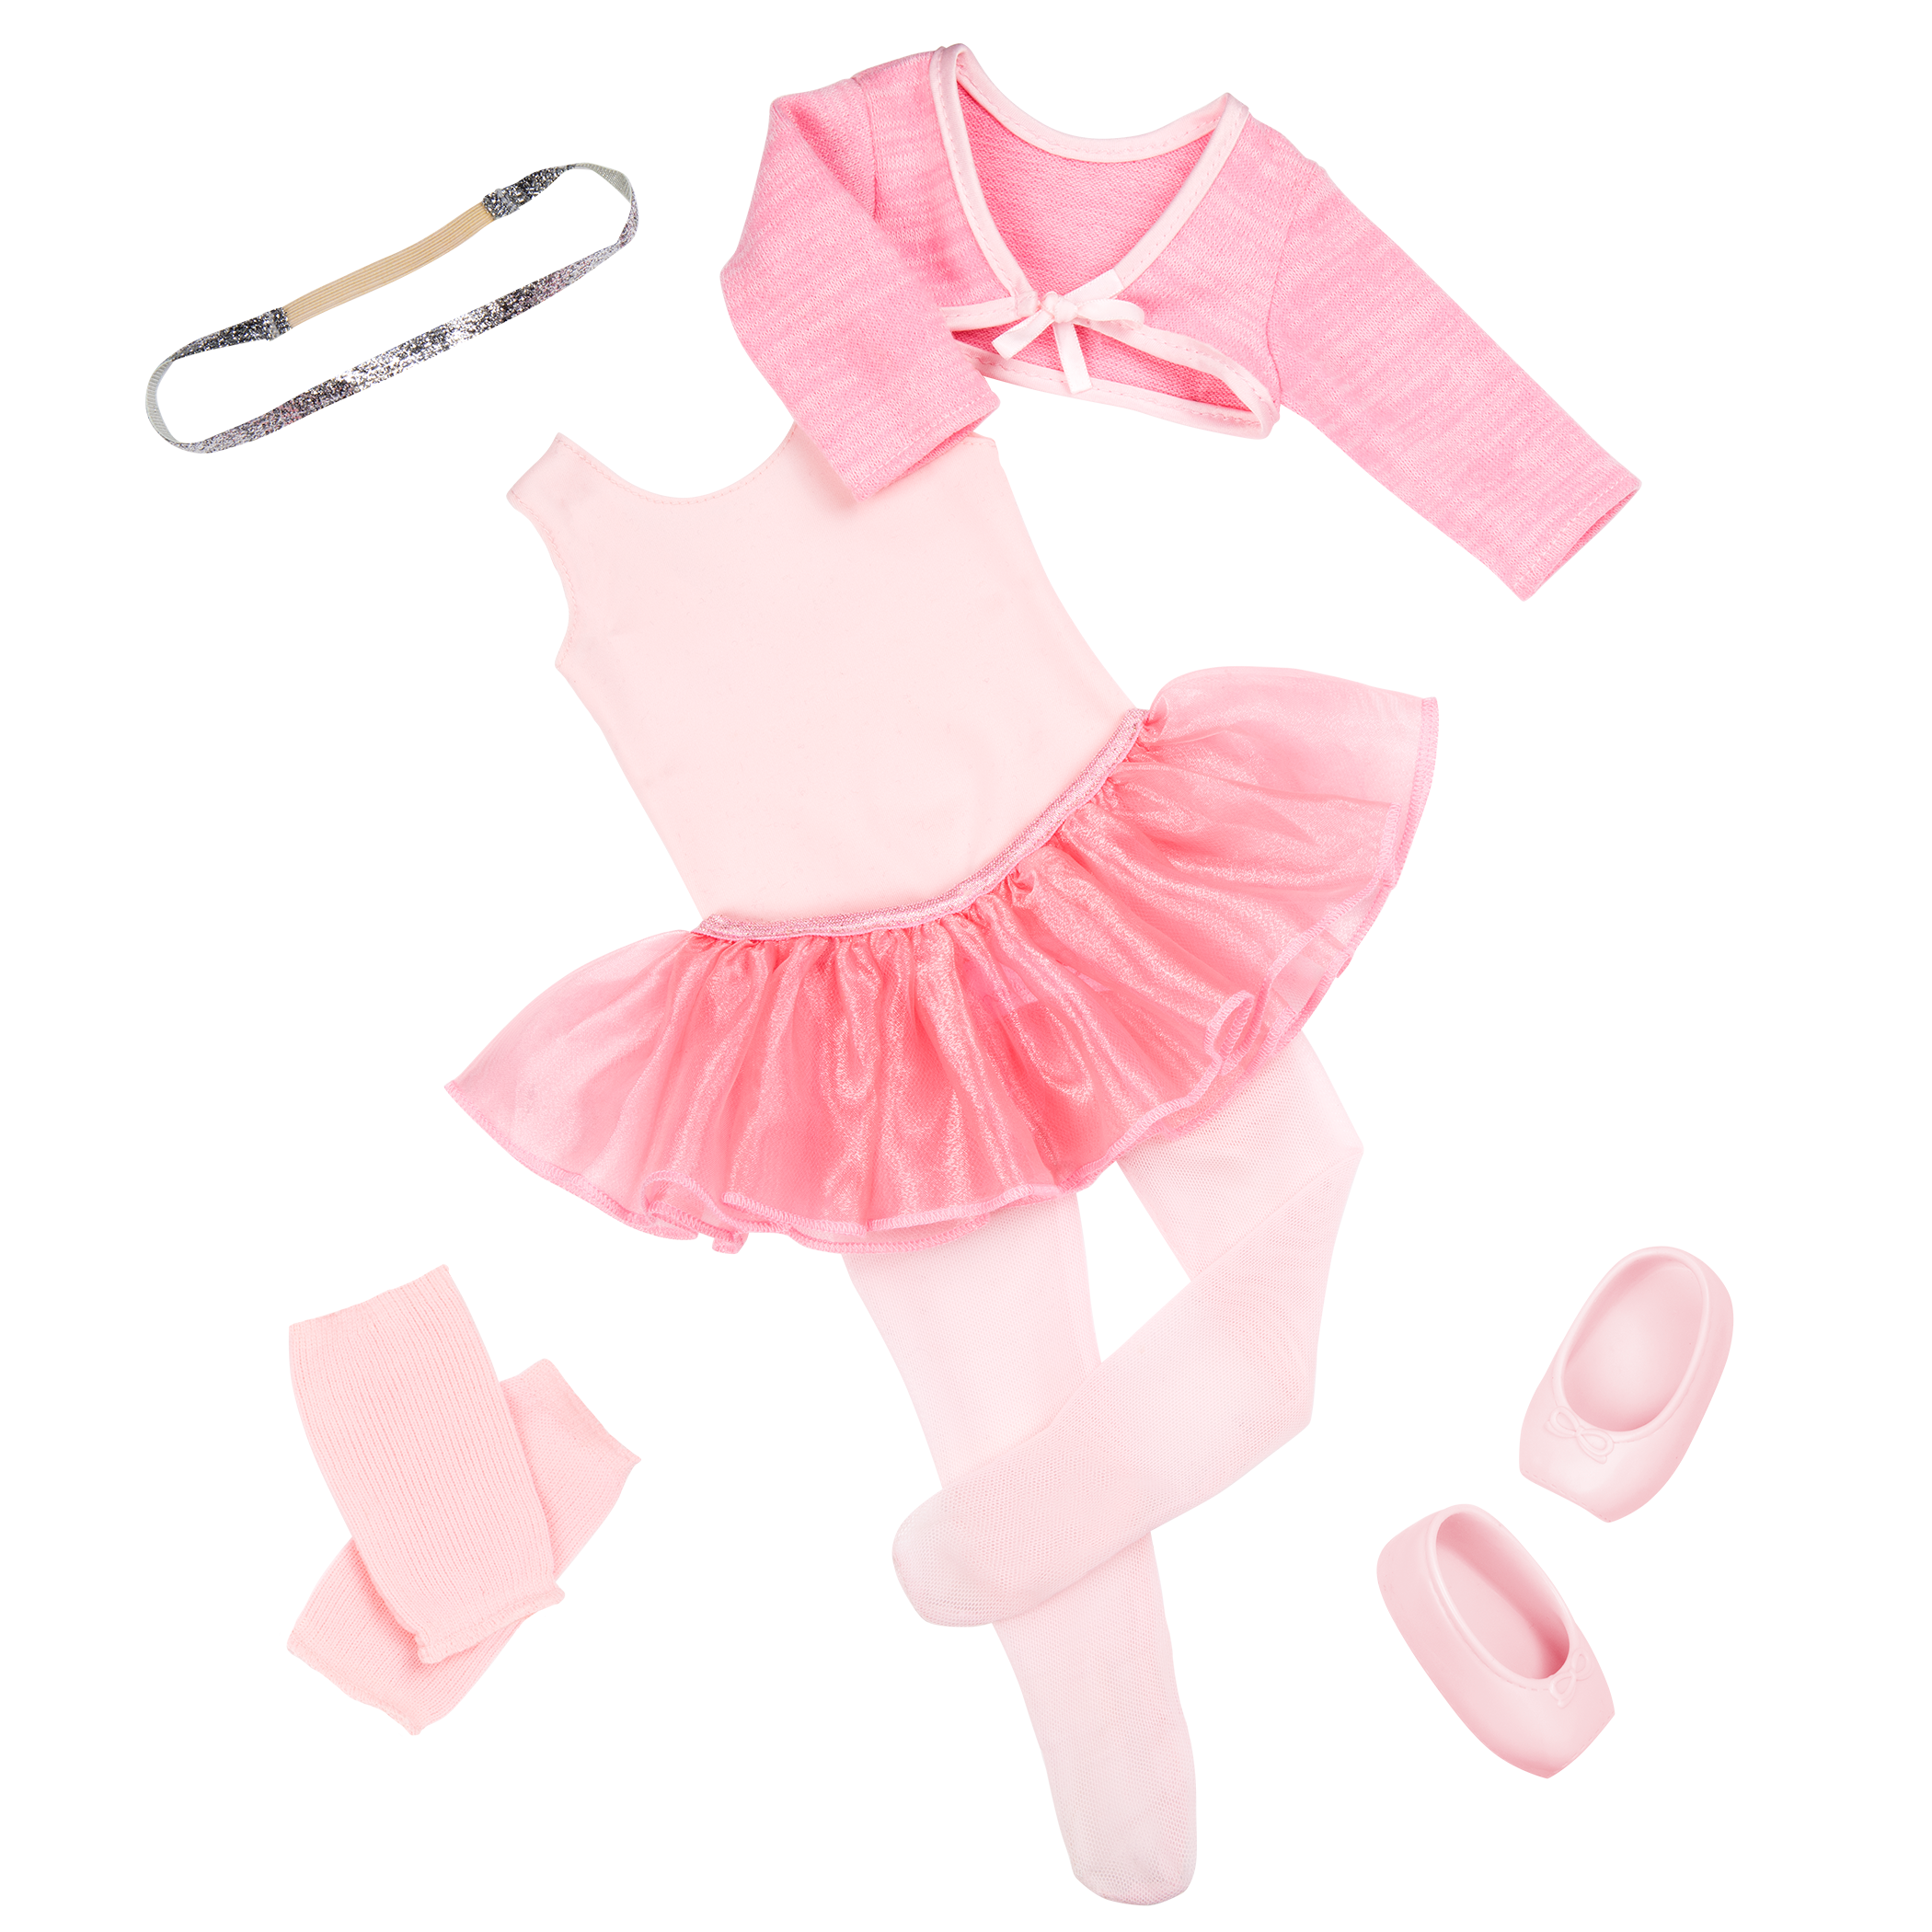 Sydney Lee Deluxe 18-inch Doll Ballet Outfit